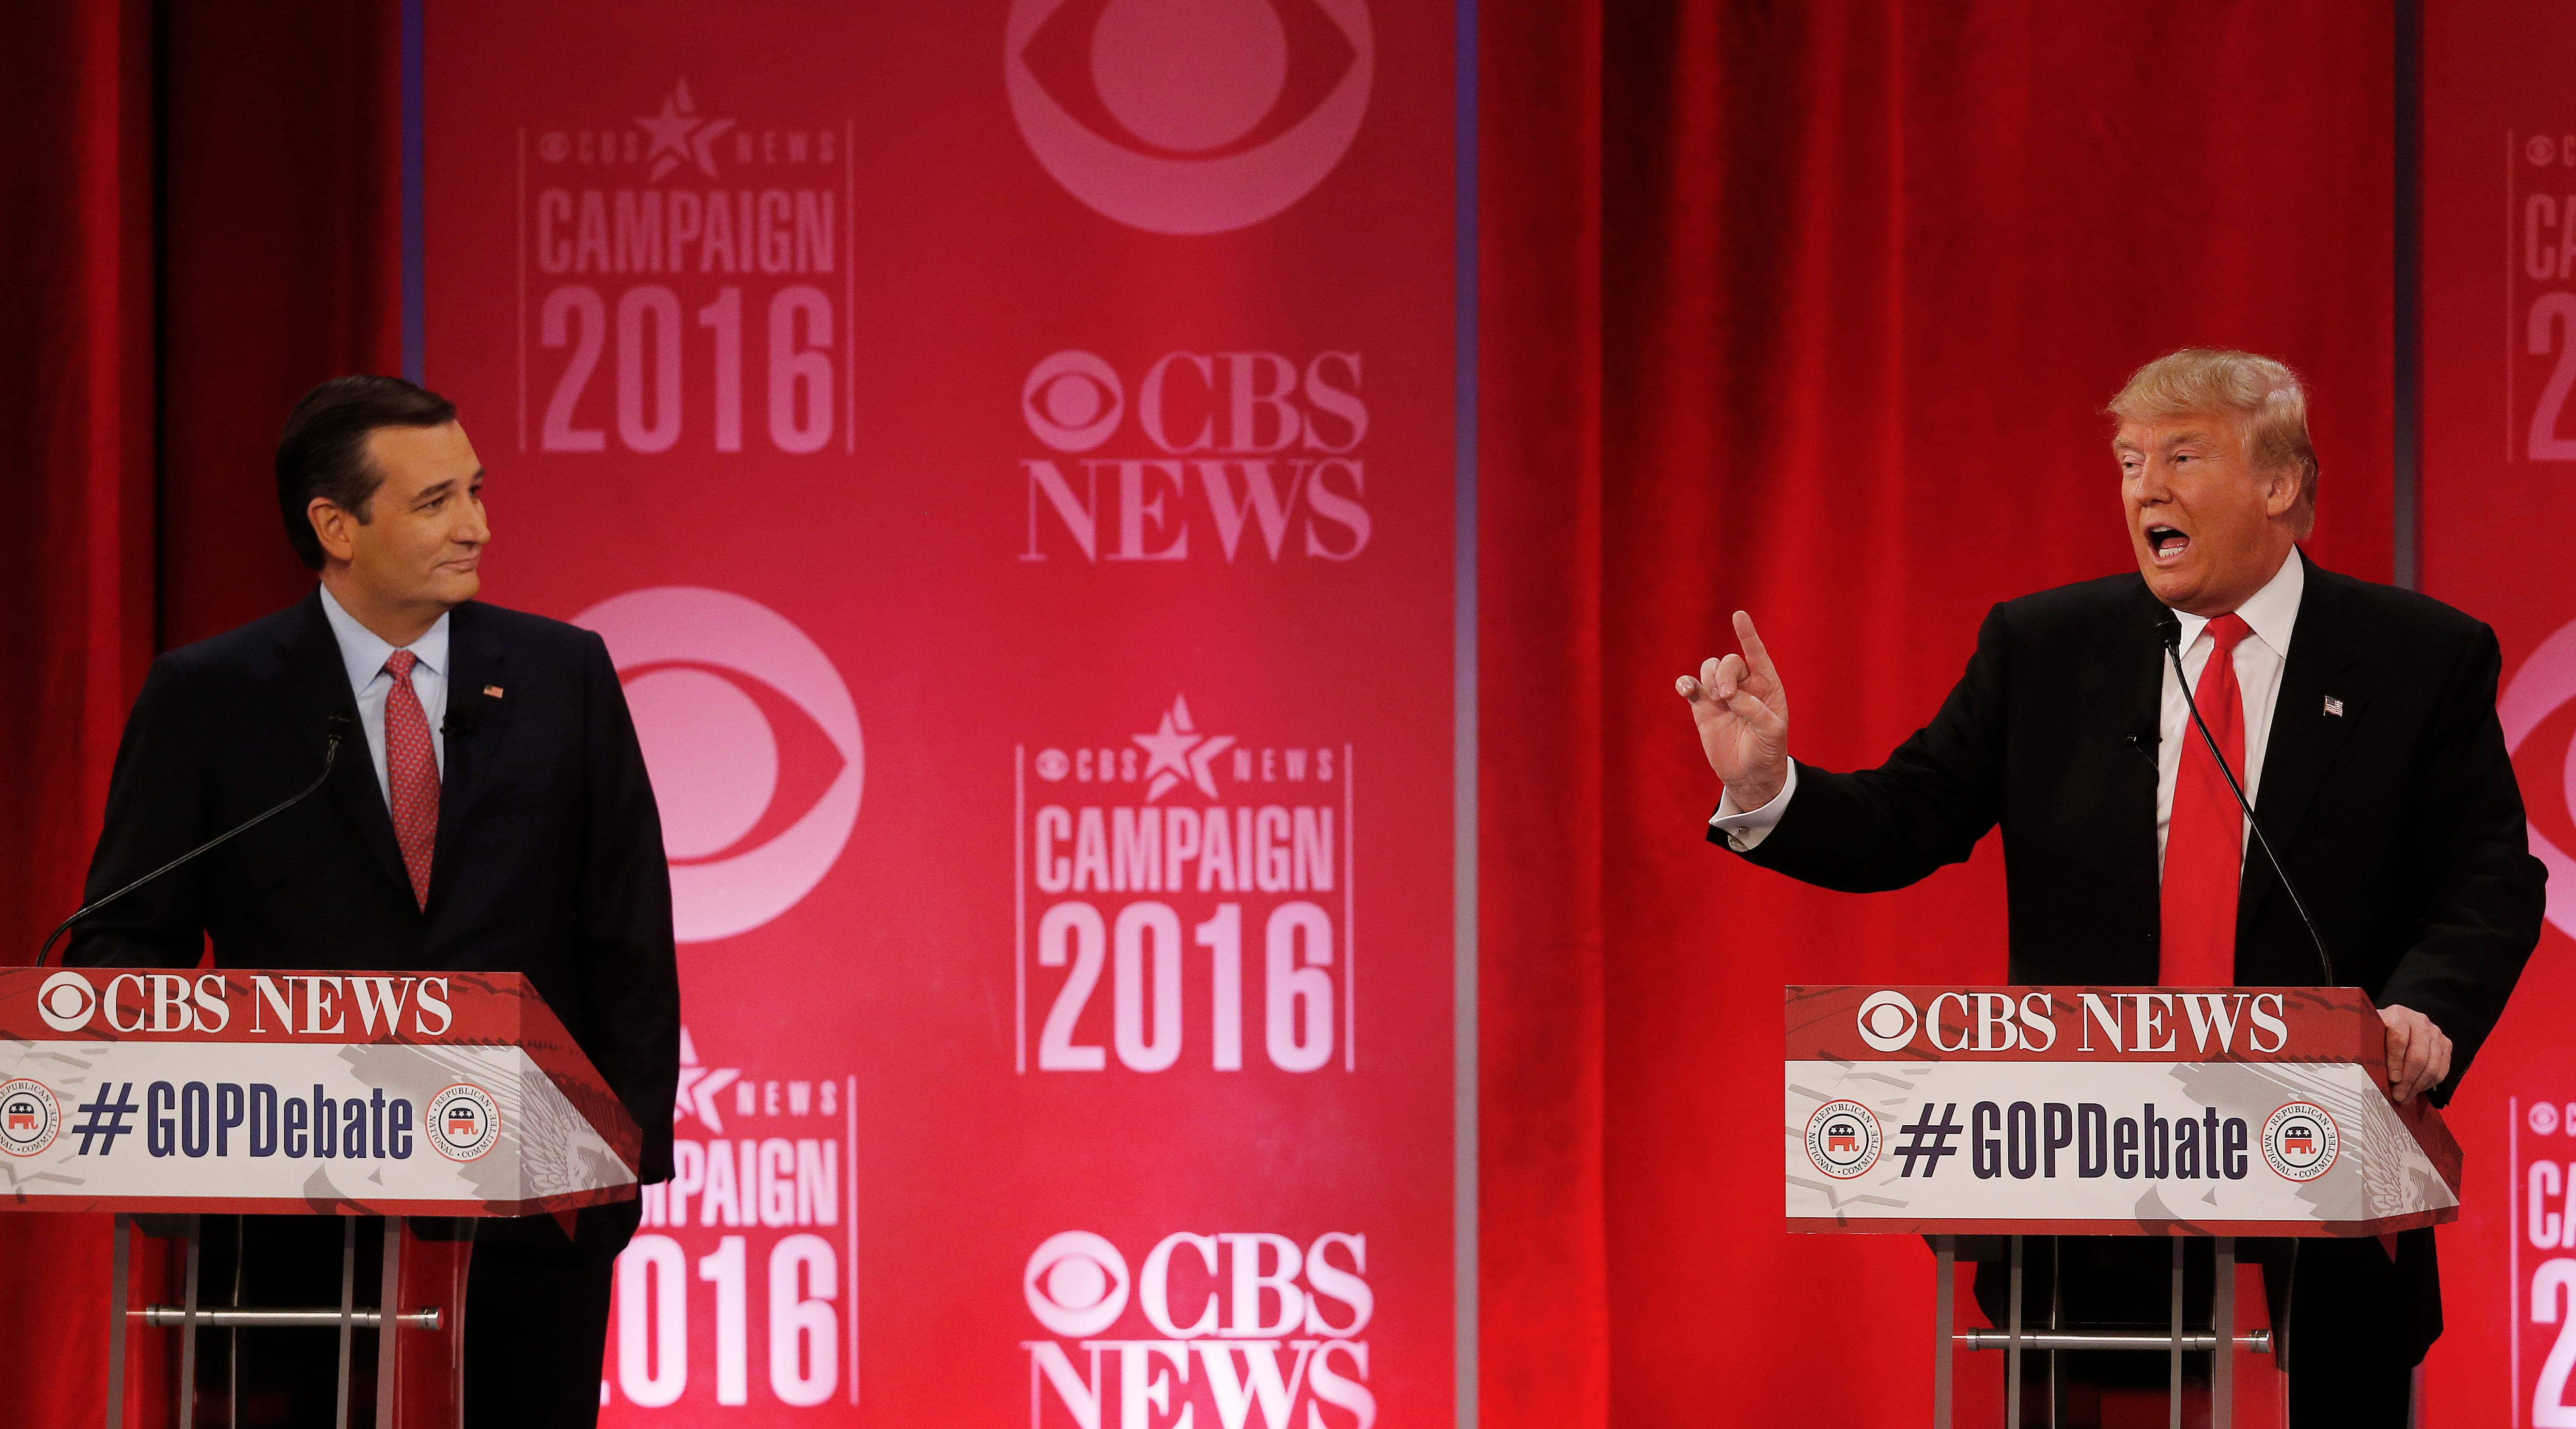 Republican presidential candidate, businessman Donald Trump speaks as Republican presidential candidate, Sen. Ted Cruz, R-Texas, left, listens during the CBS News Republican presidential debate at the Peace Center, Saturday, Feb. 13, 2016, in Greenville, S.C. (AP Photo/John Bazemore)